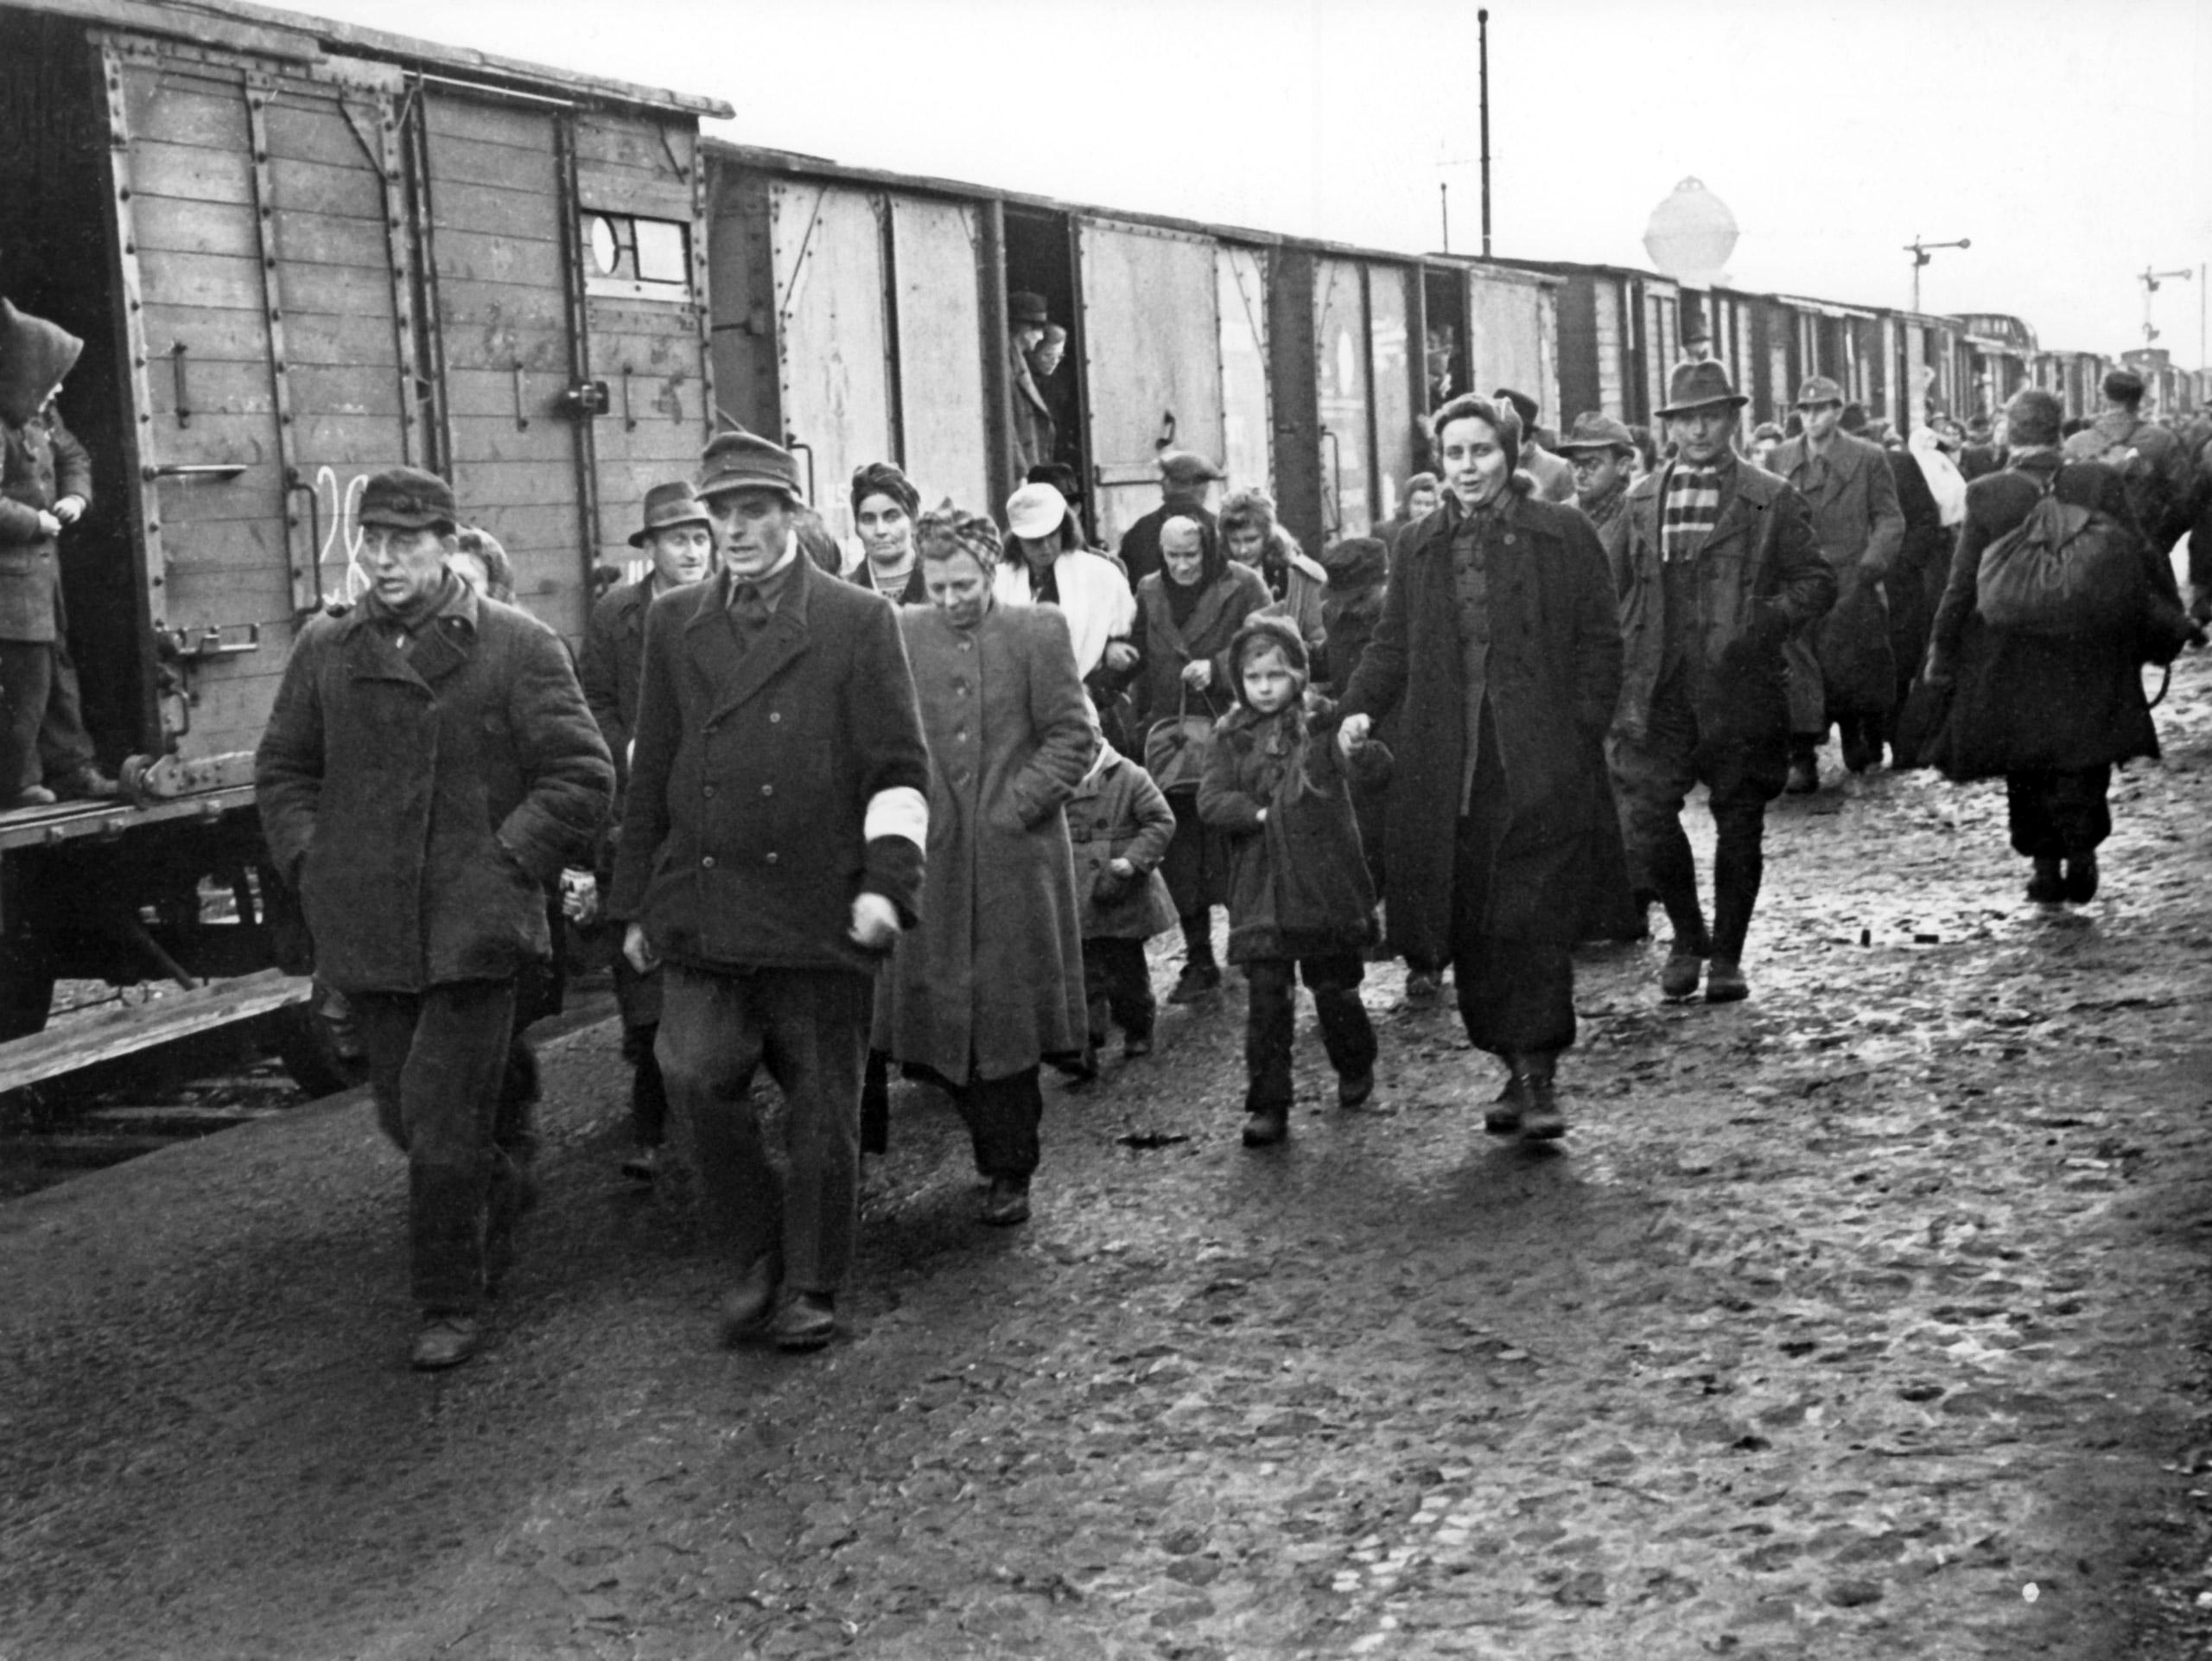 An attendant with white brassard (front, r) accompanies newly arrived refugees, in January 1946, through the refugee camp in Bebra, Germany.